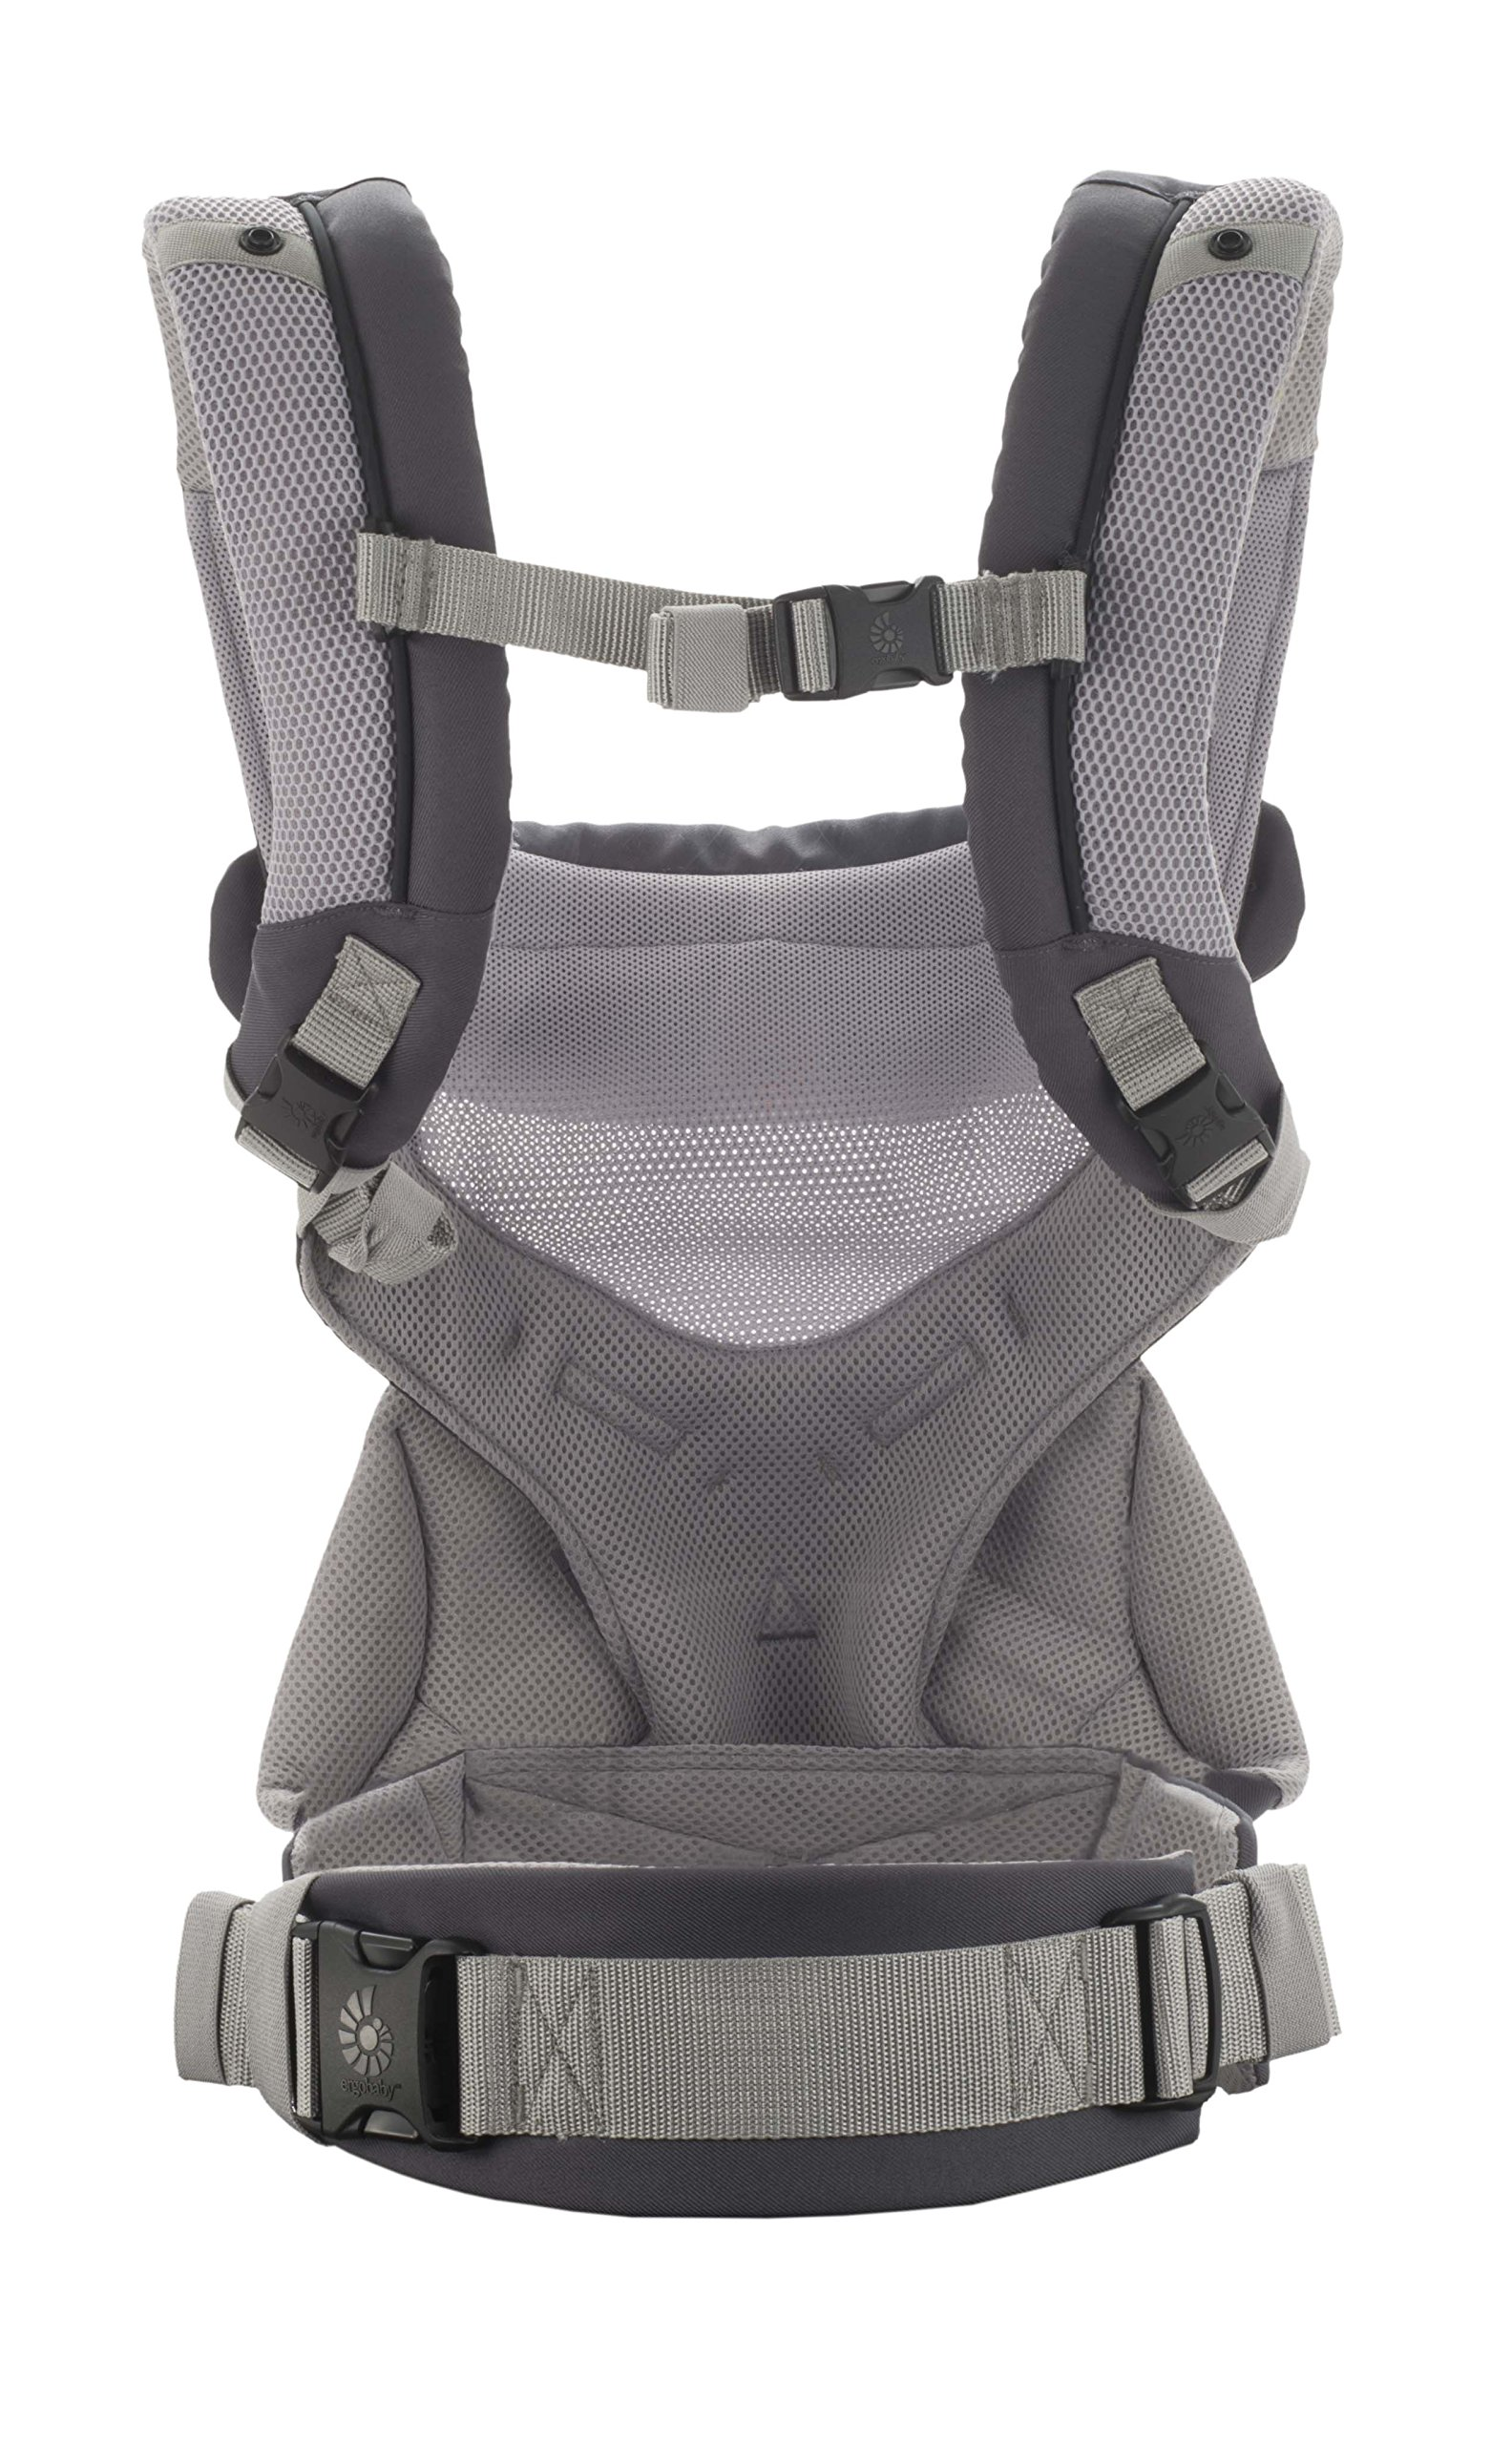 Ergobaby Carrier, 360 All Carry Positions Baby Carrier with Cool Air Mesh, Carbon Grey by Ergobaby (Image #2)